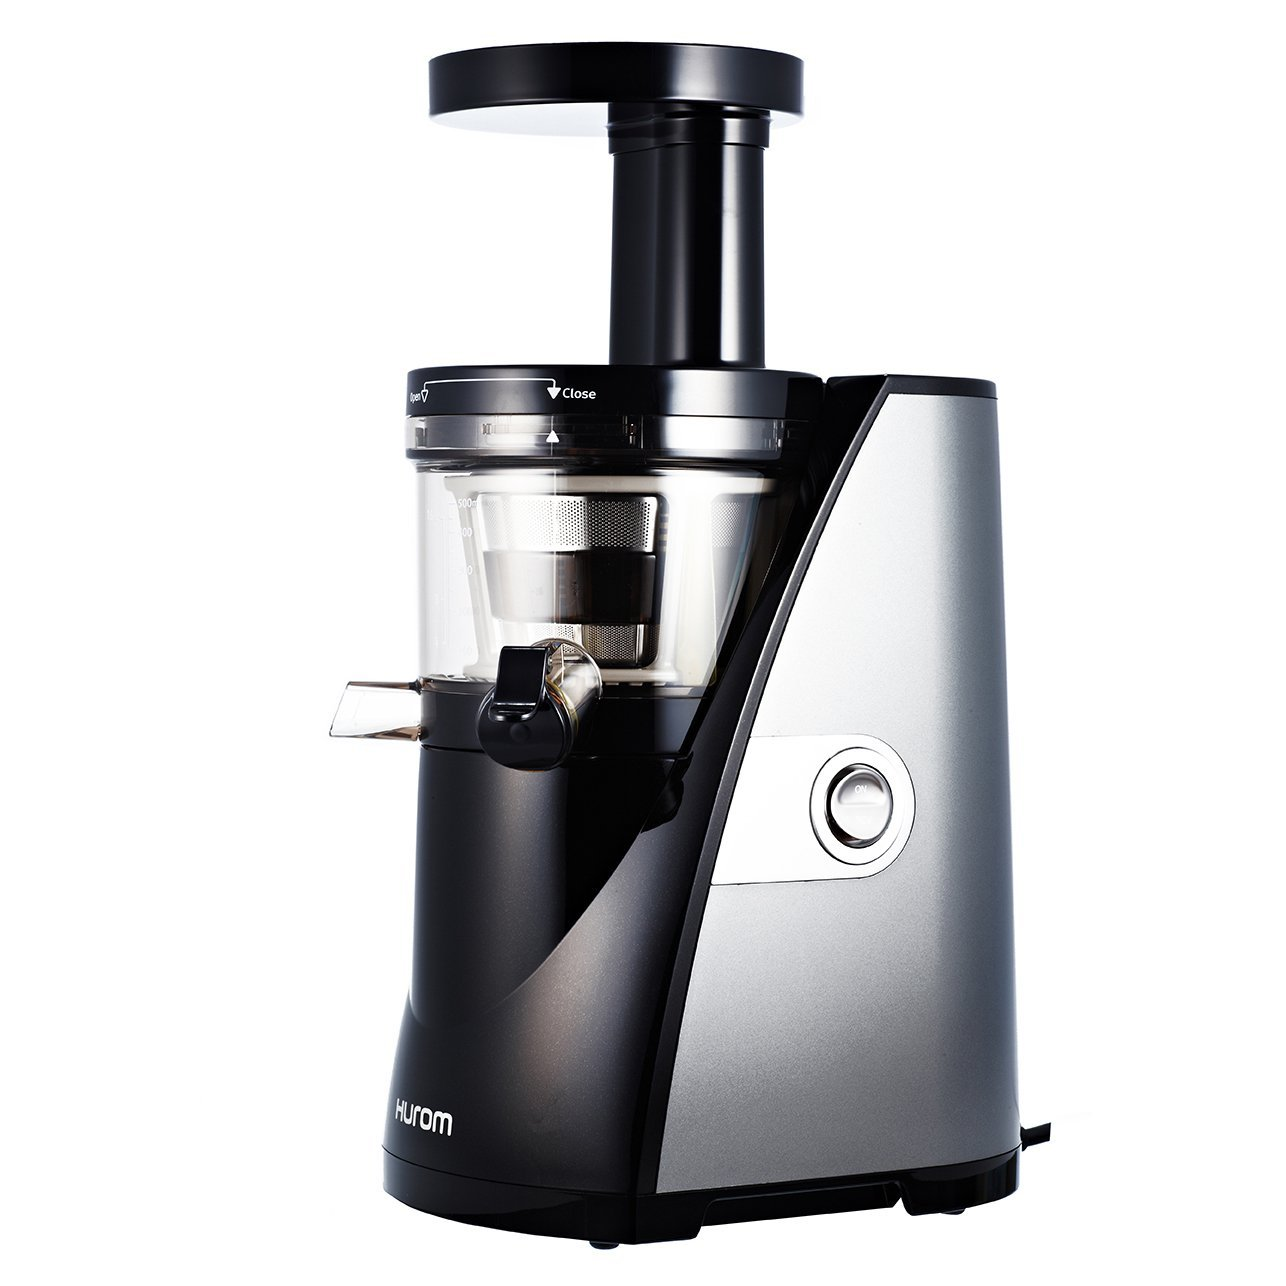 Hurom Slow Juicer Q0010 : 5 Best Hurom Juicer Reviews UPDATED: 2018 The Home Savant